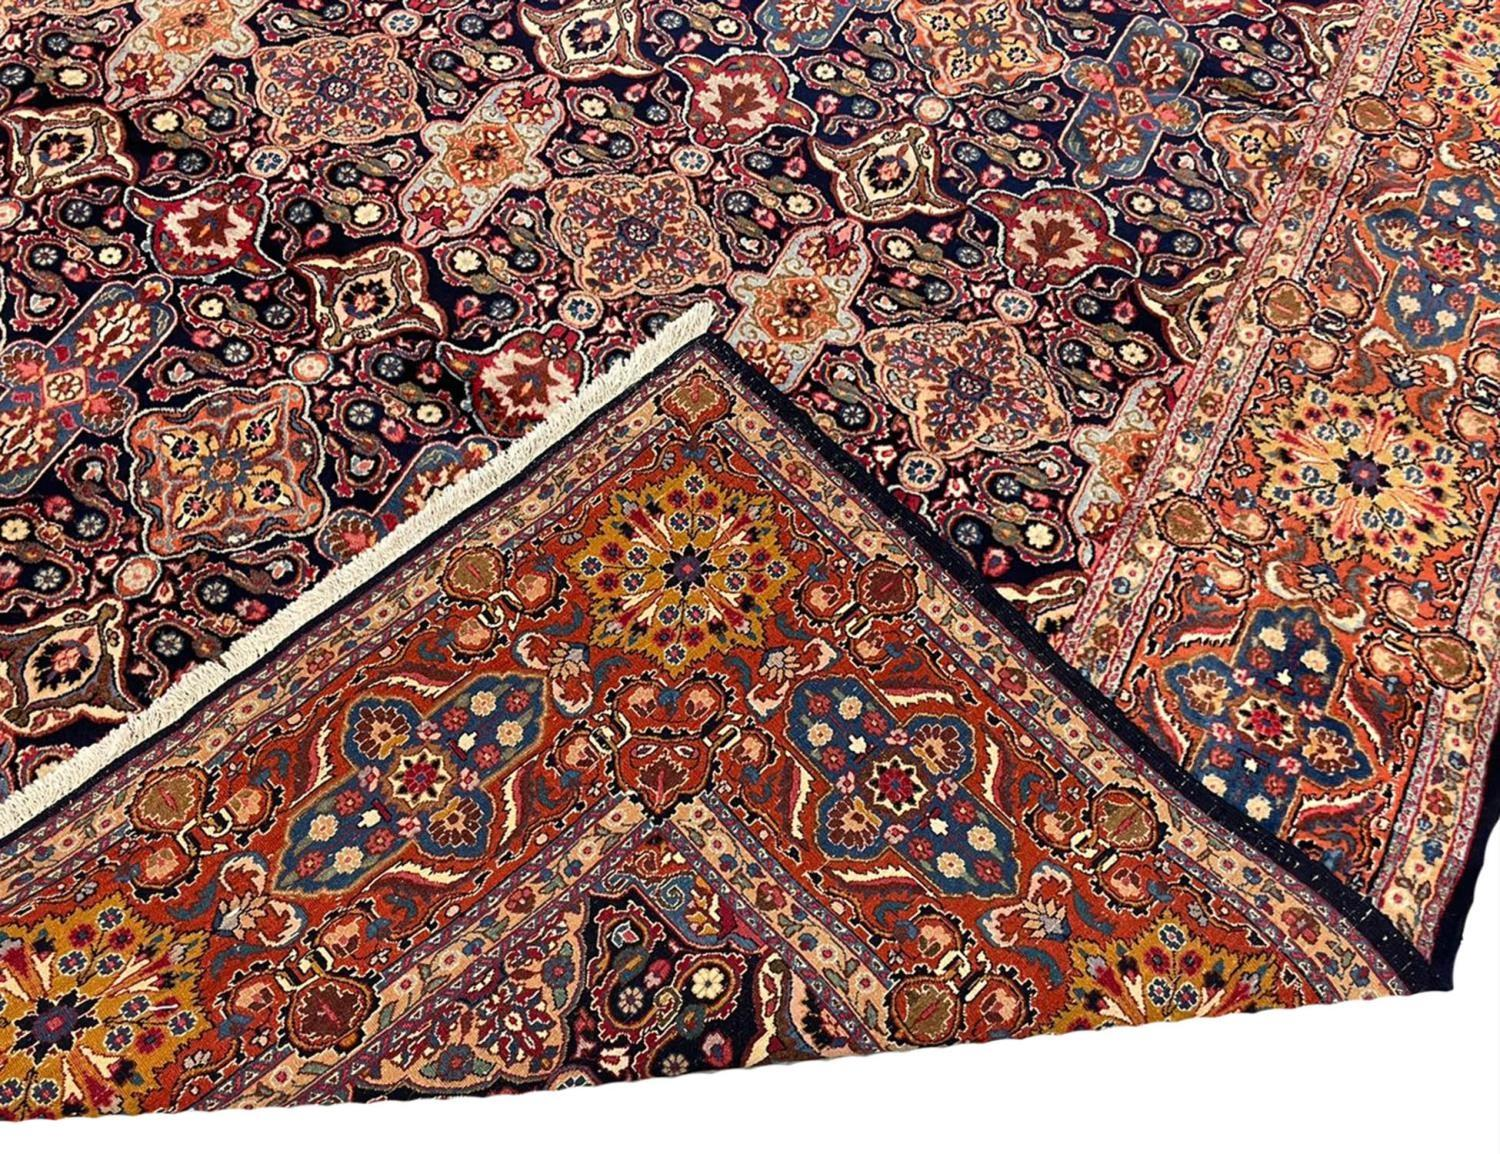 FINE ANTIQUE PERSIAN KHORASSAN CARPET, 340cm x 260cm. - Image 5 of 5